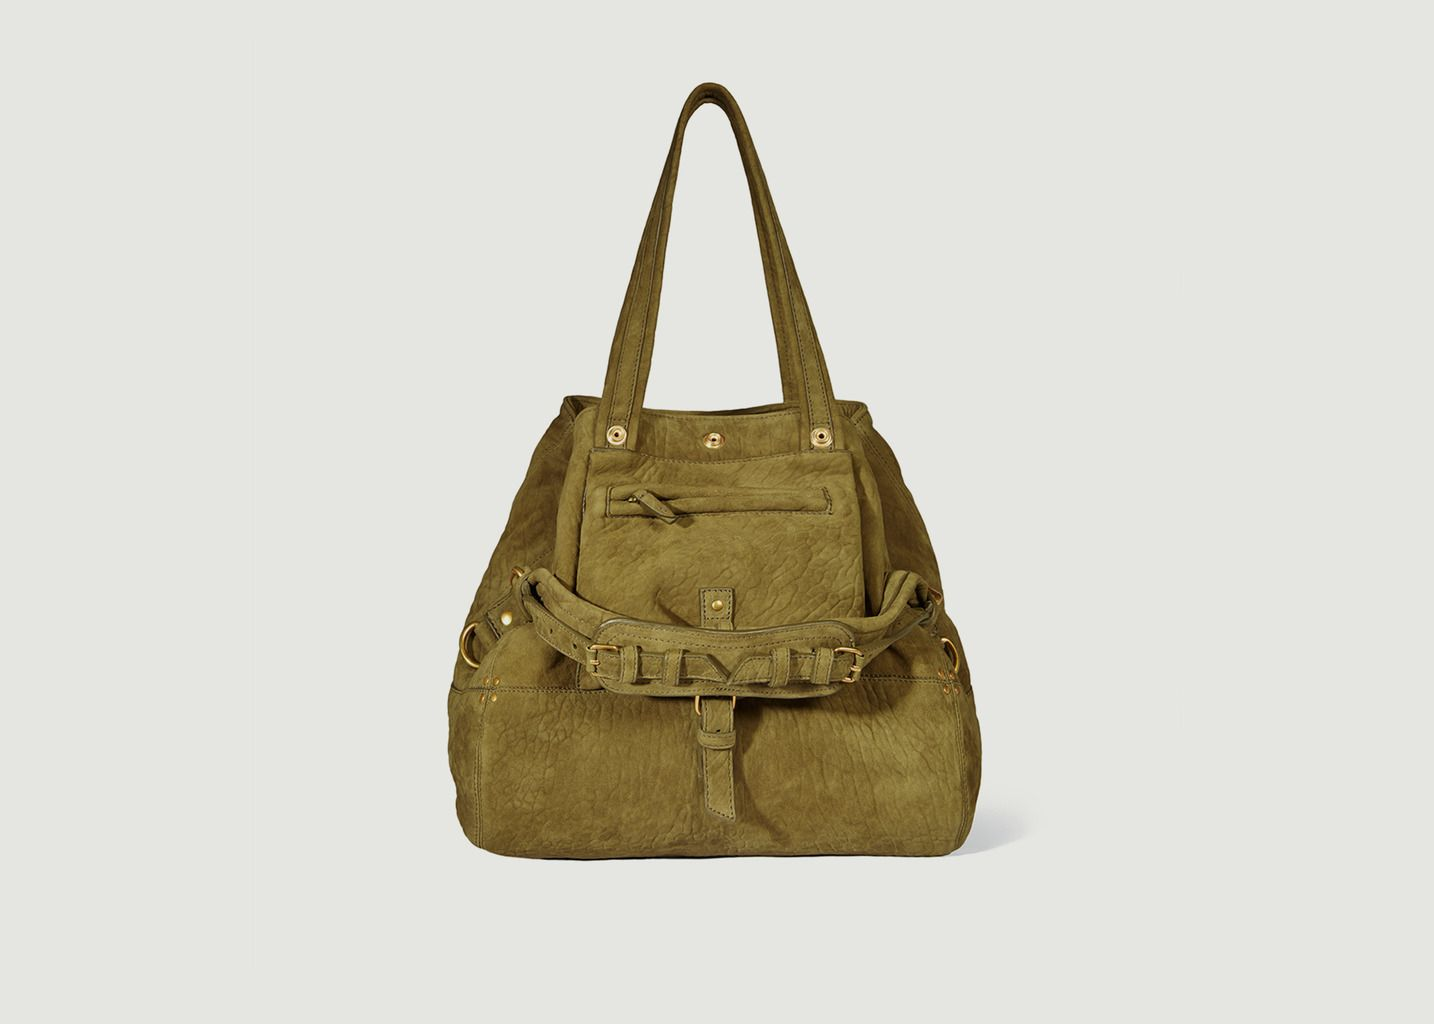 Billy M Cuir En Sac Jérôme L'exception Dreyfuss Bubble Khaki 1WftIq7